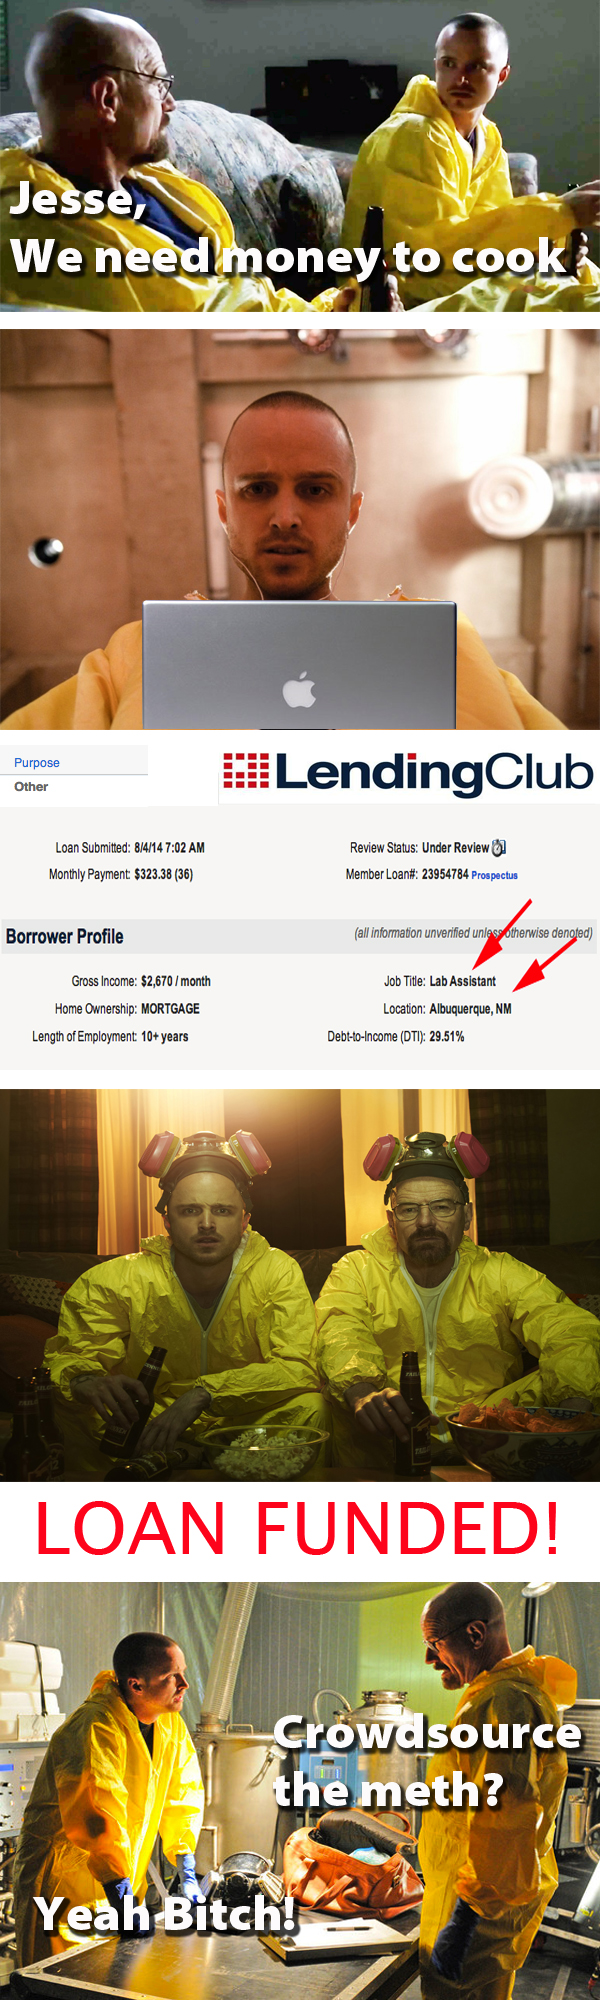 LendingClub Breaking Bad